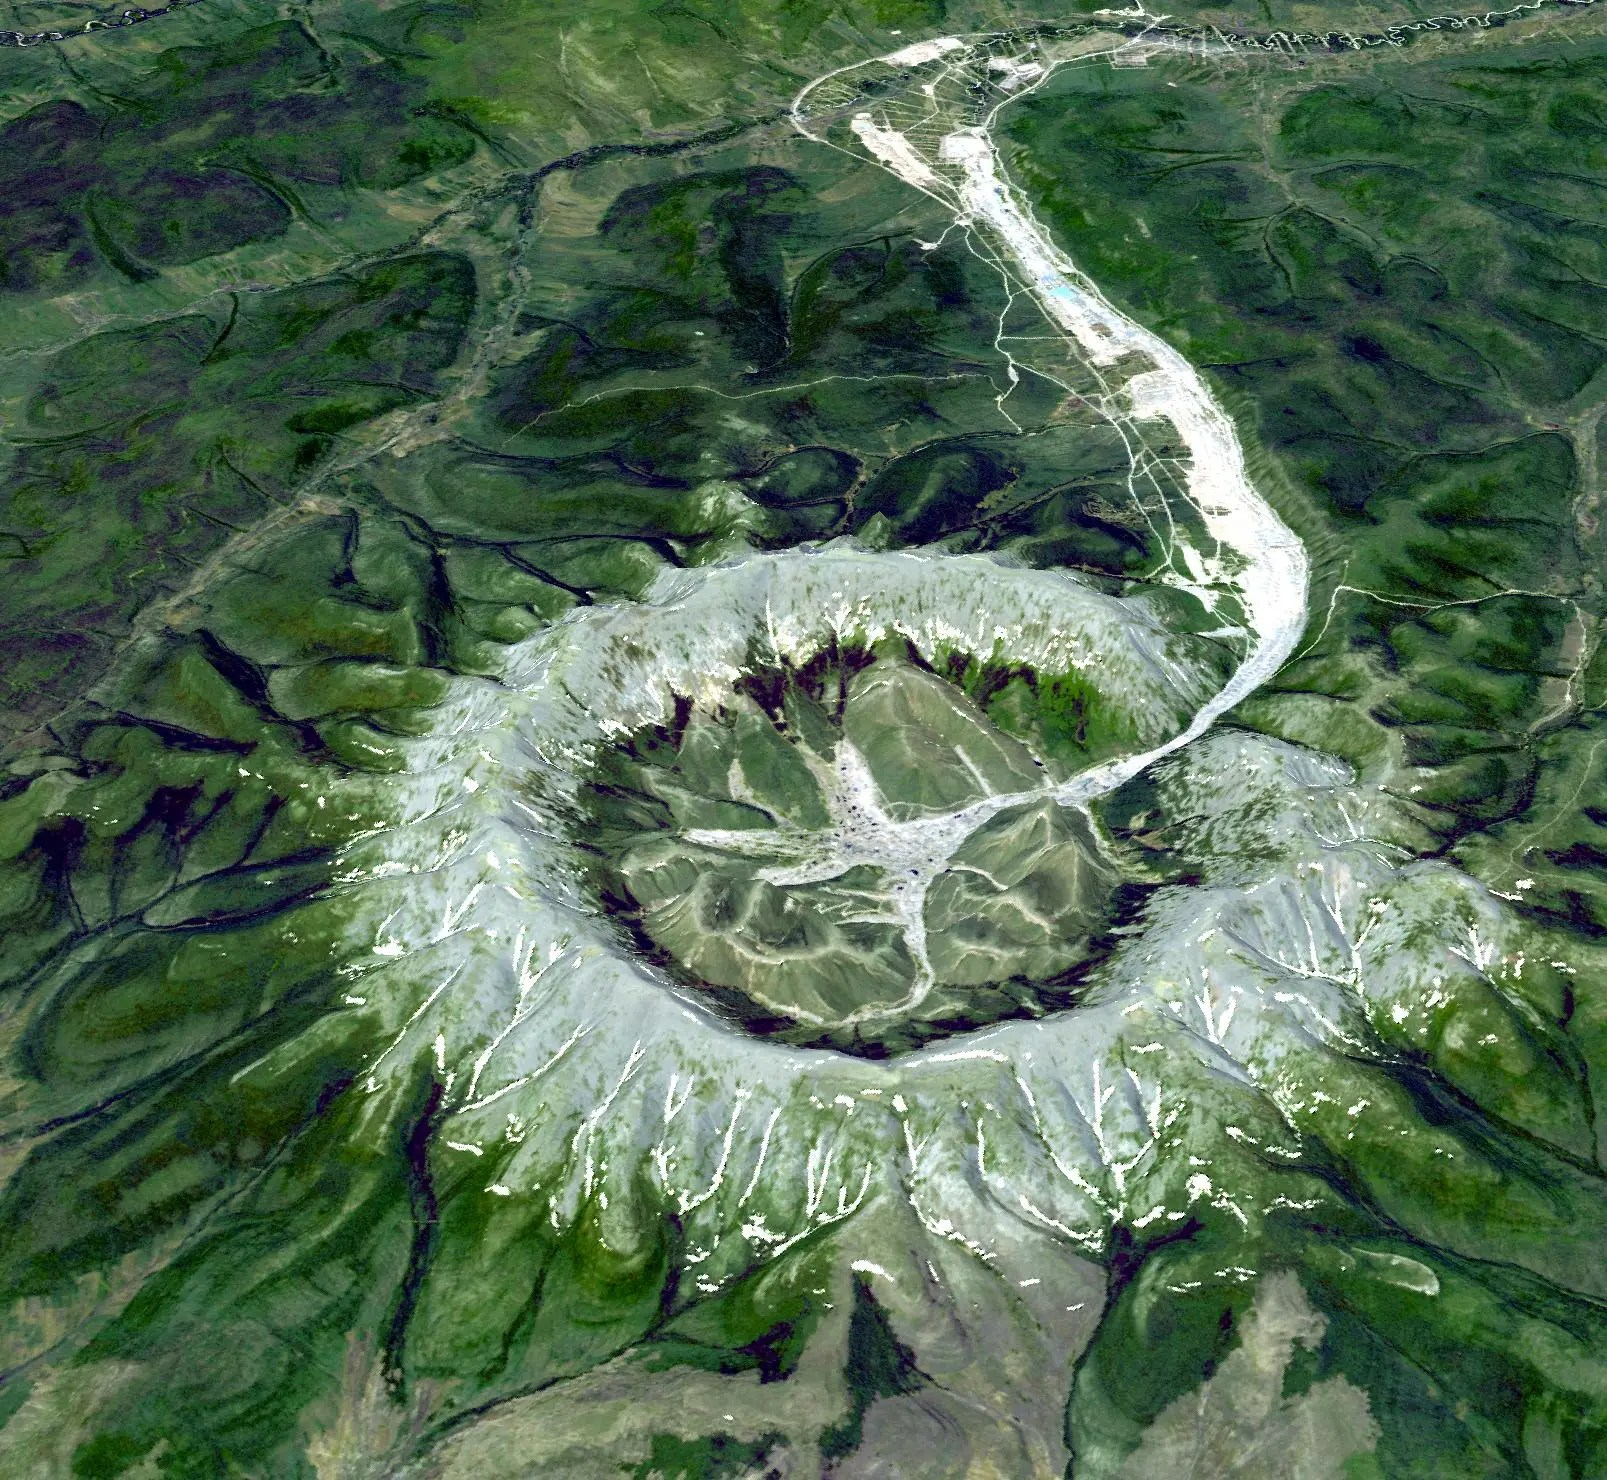 The perfectly circular intrusion of Kondyor Massif in Russia formed when molten magma crystallized underneath the earth and then rose to the surface. A stream flows out of its center.